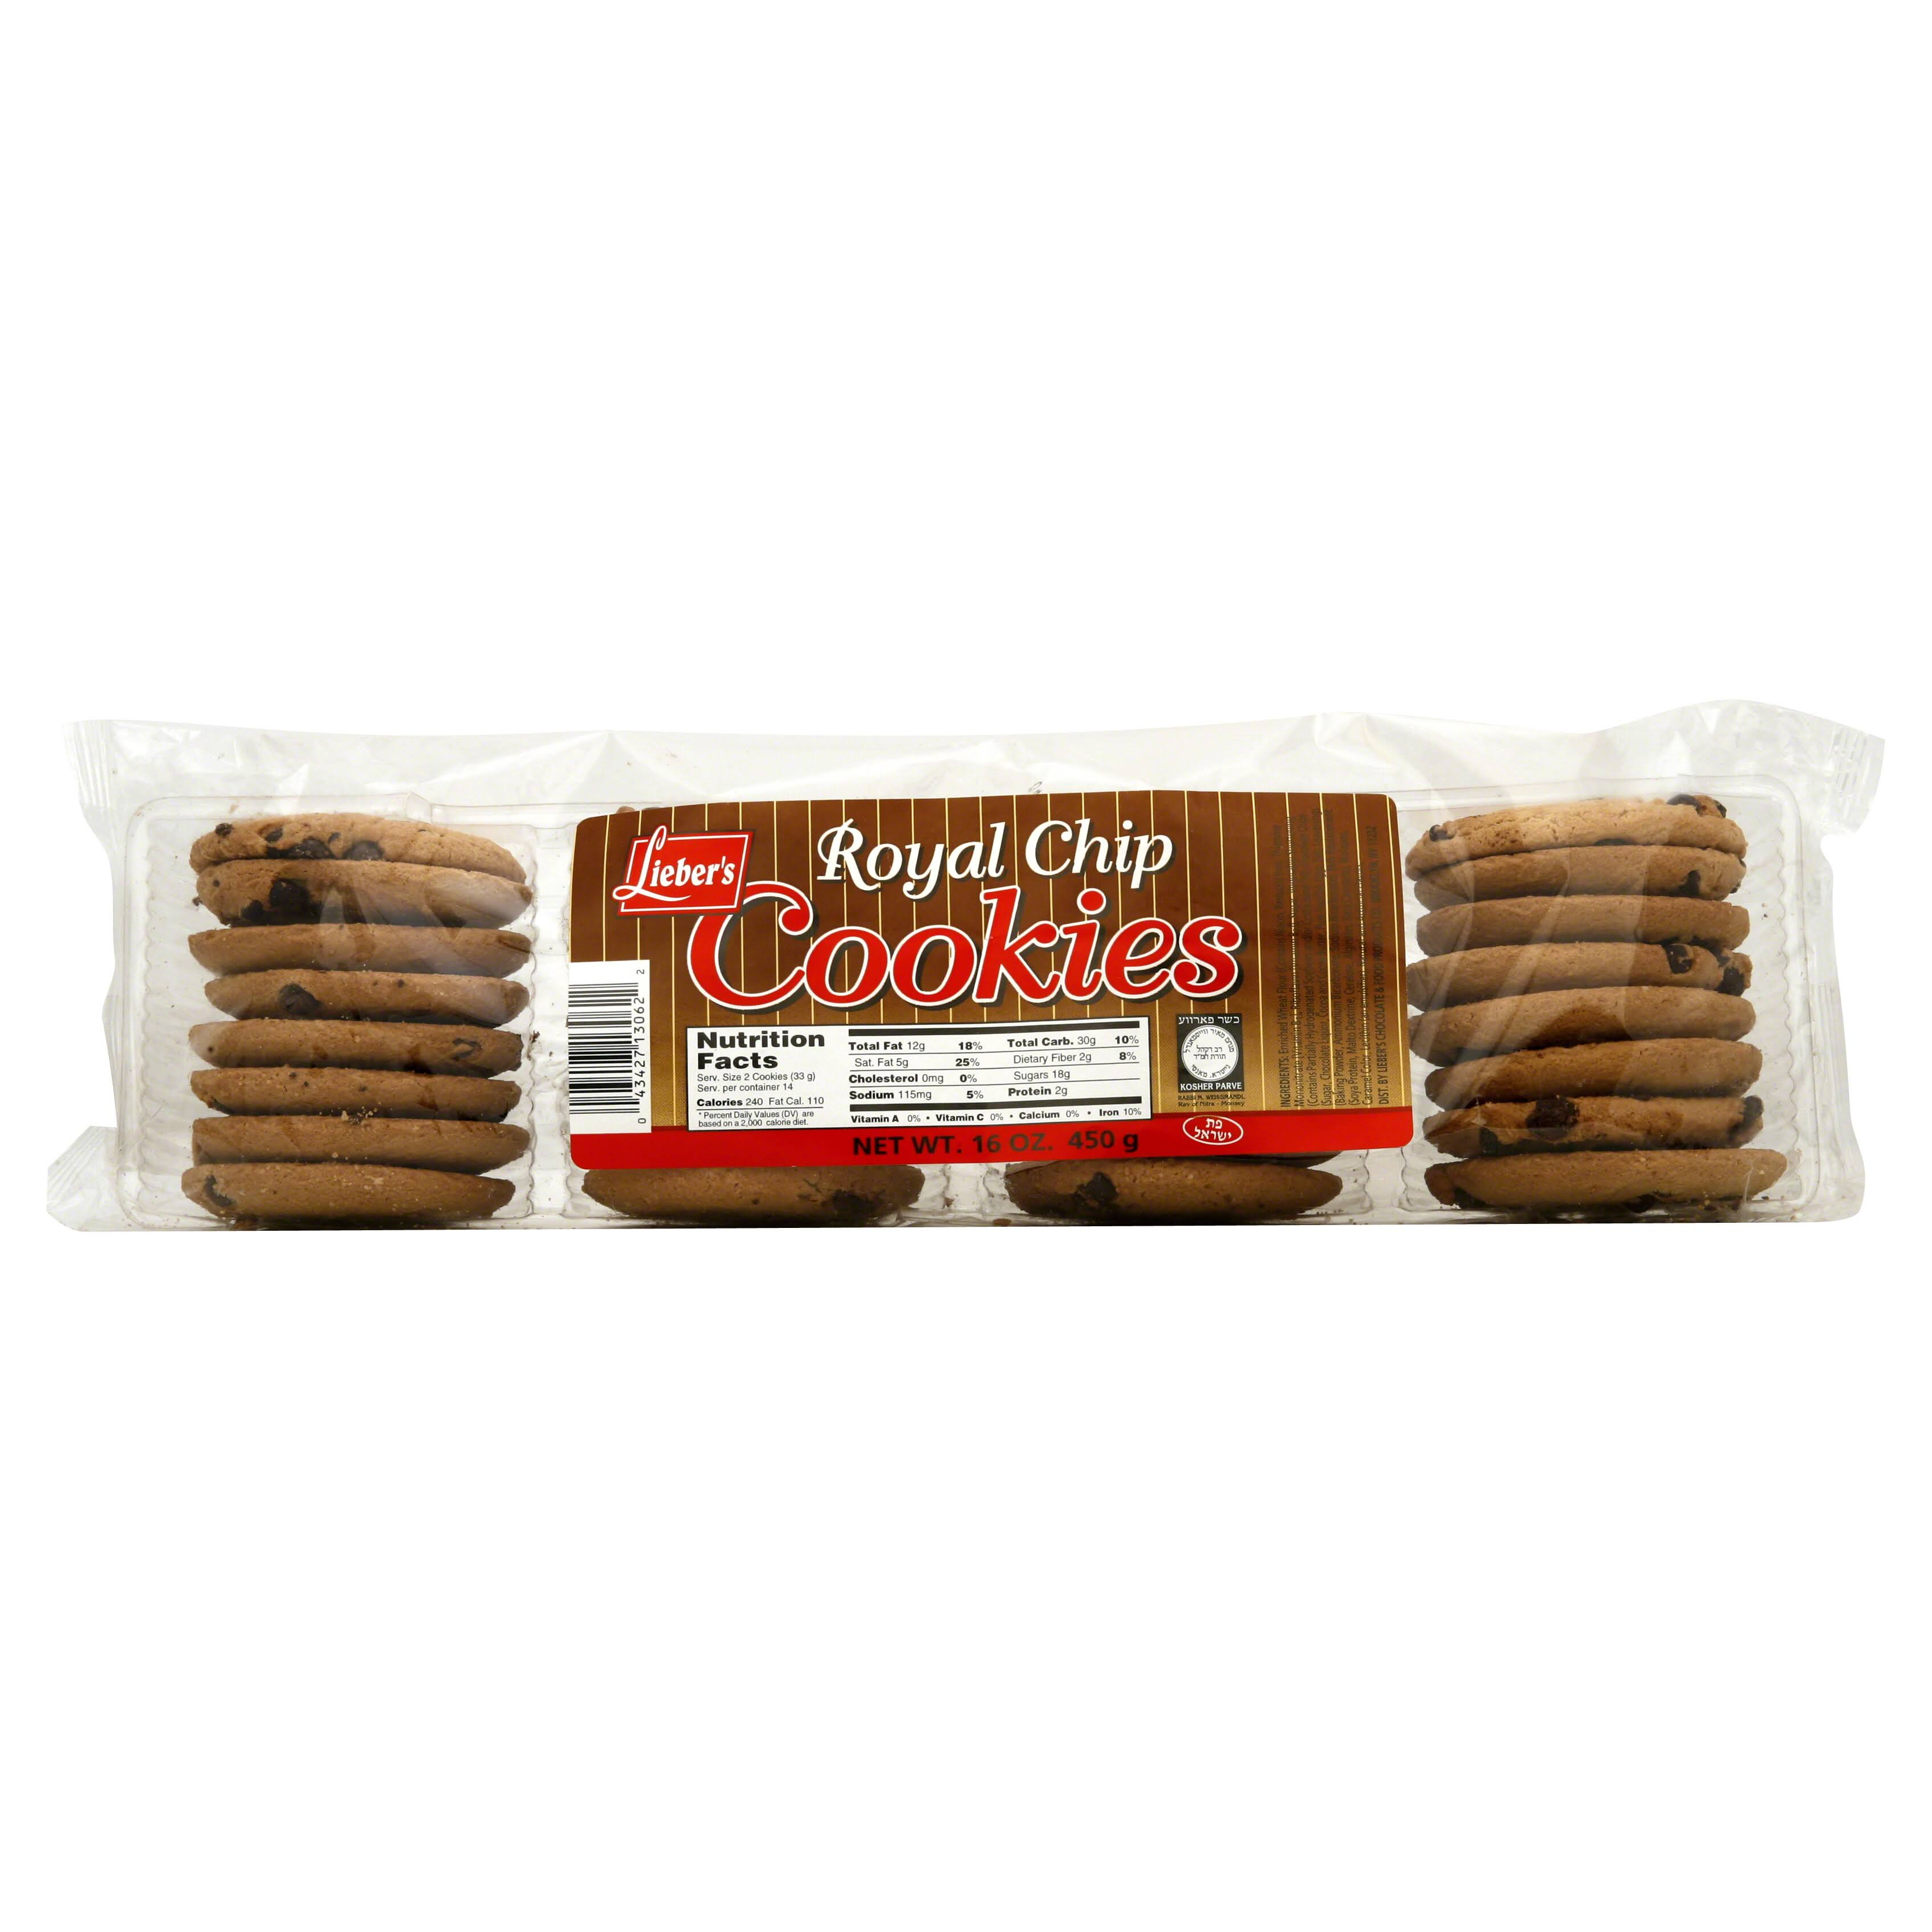 Liebers Cookies, Royal Chip - 16 oz